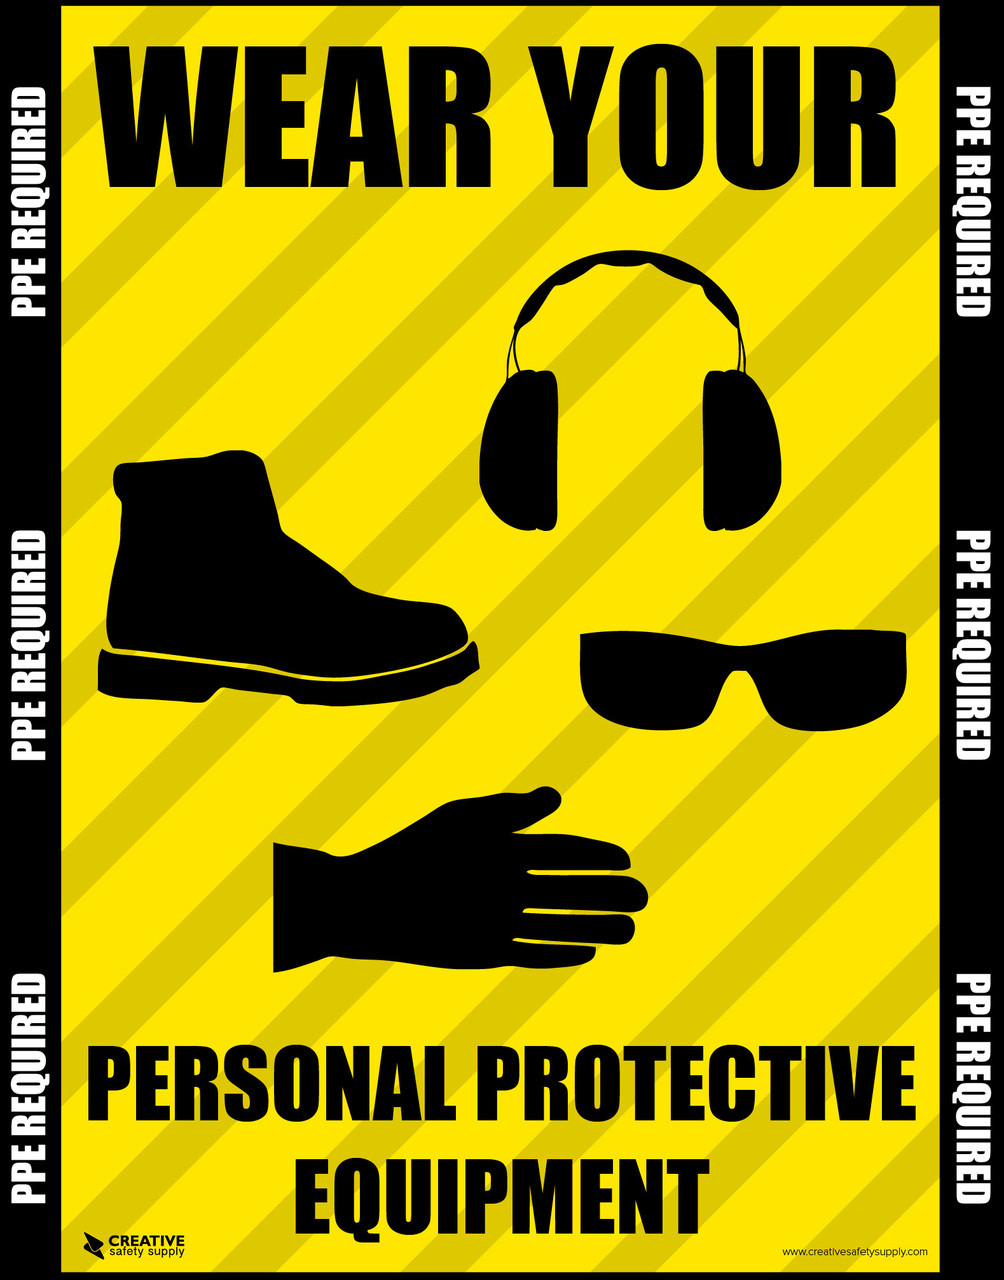 e2f32cbfc41 Wear Your Personal Protective Equipment - Safety Poster